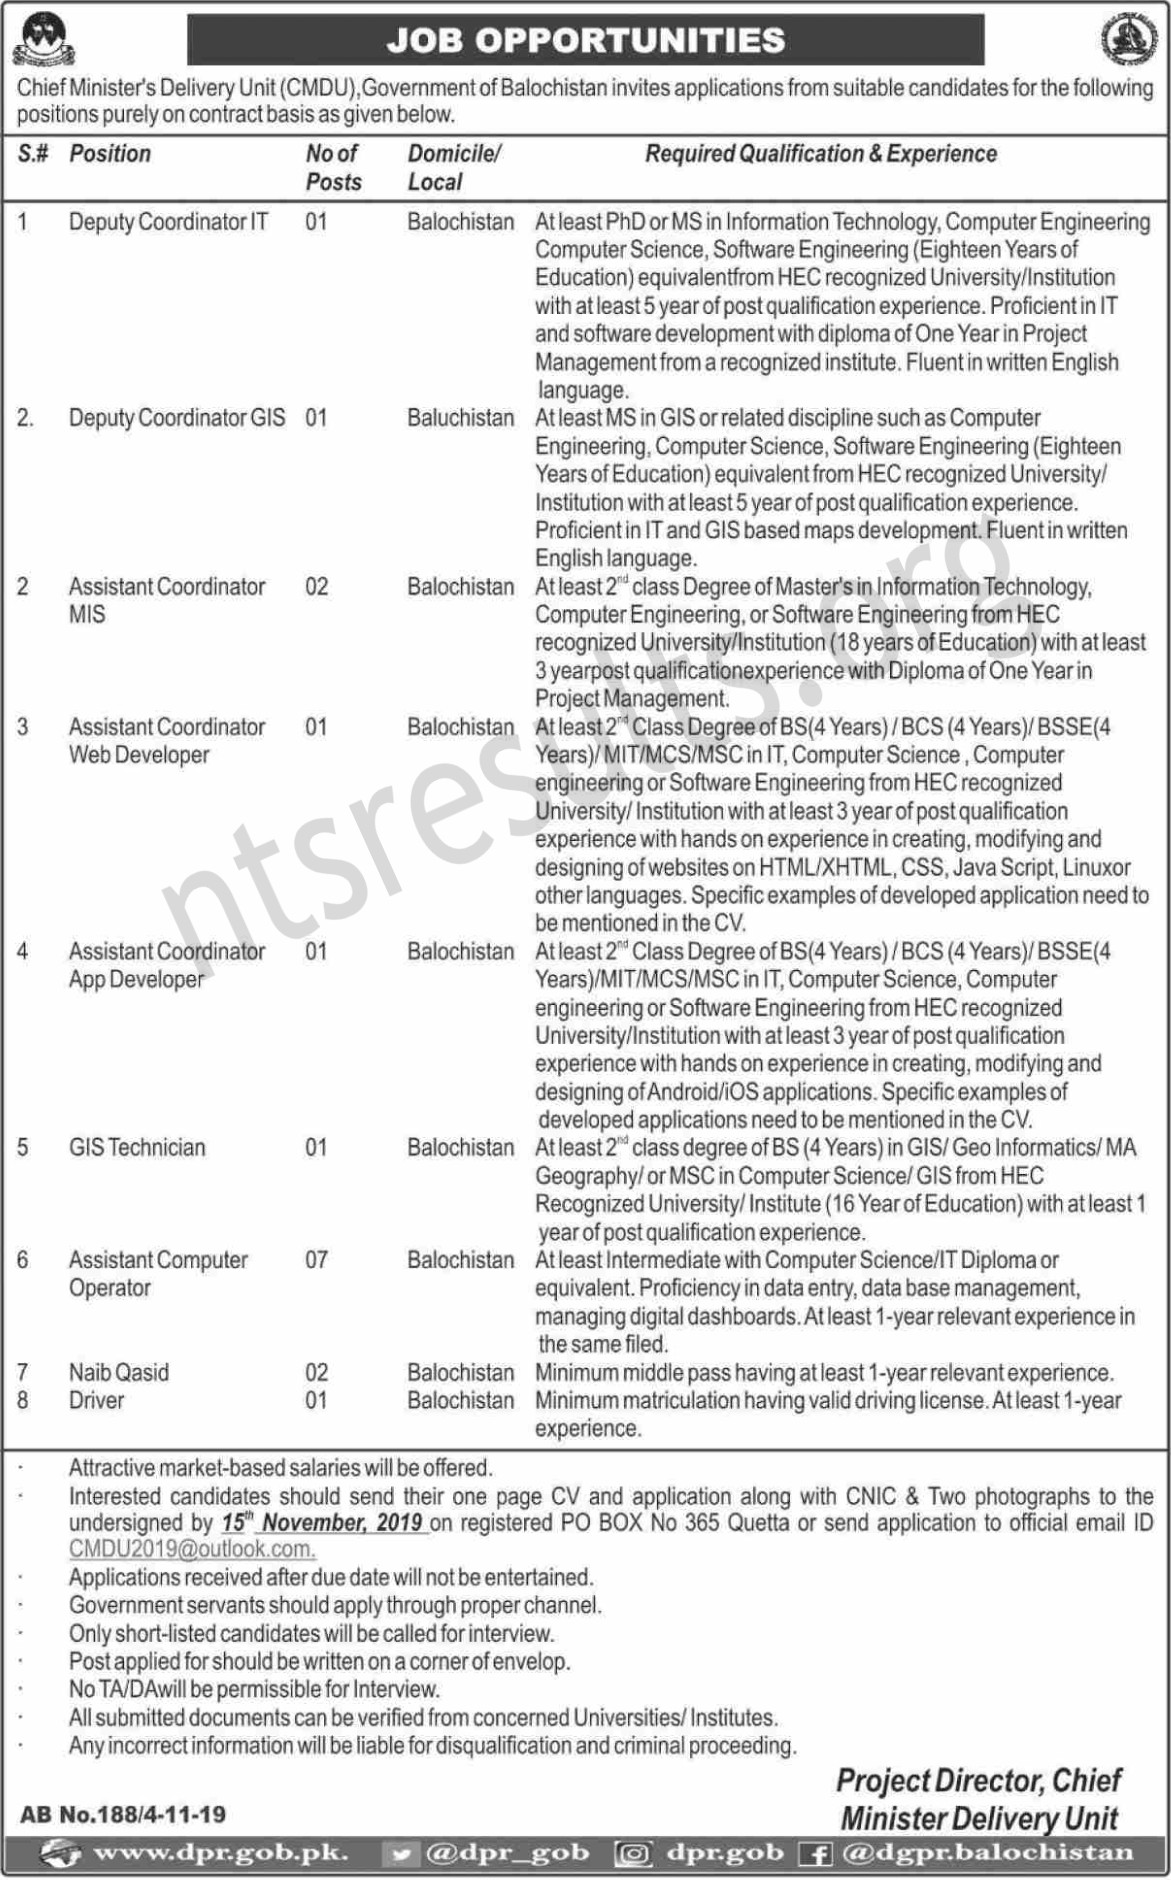 Chief Minister Delivery Unit CMDU Jobs